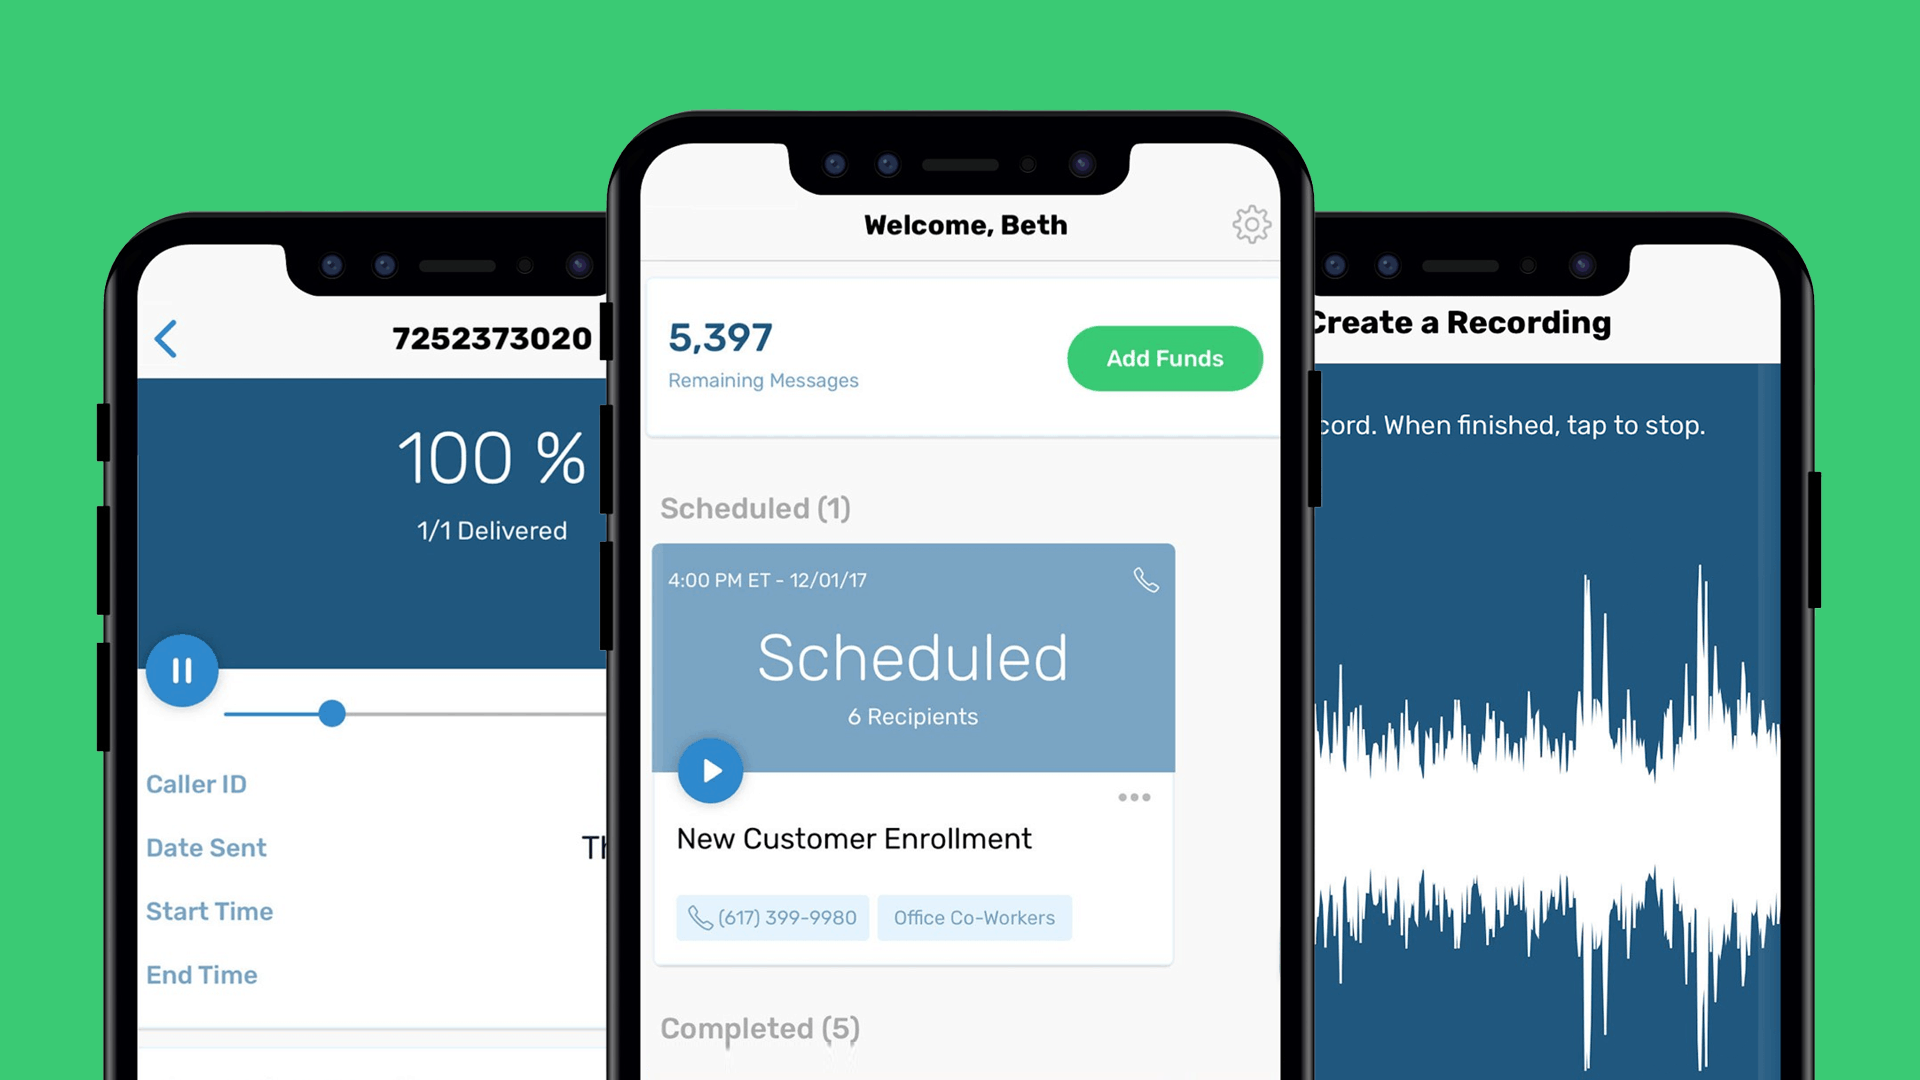 Slybroadcast - schedule, check delivery, and record ringless voicemails